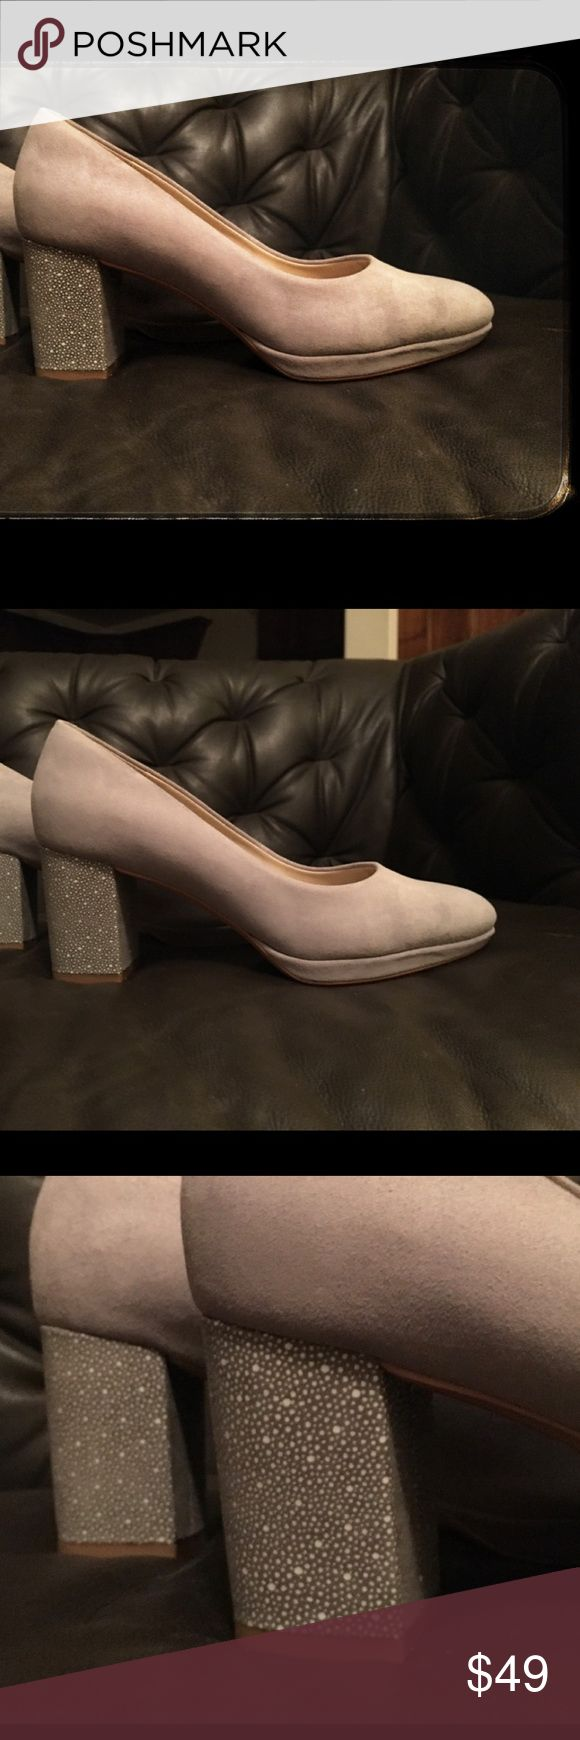 "NWT Clarks Grey Block heels Grey Clark's block heels, with pretty accent heels. Light grey color, suede material. 3"" heel. Never worn!! (See photo of bottom of shoe.) no box. Clarks Shoes Heels"